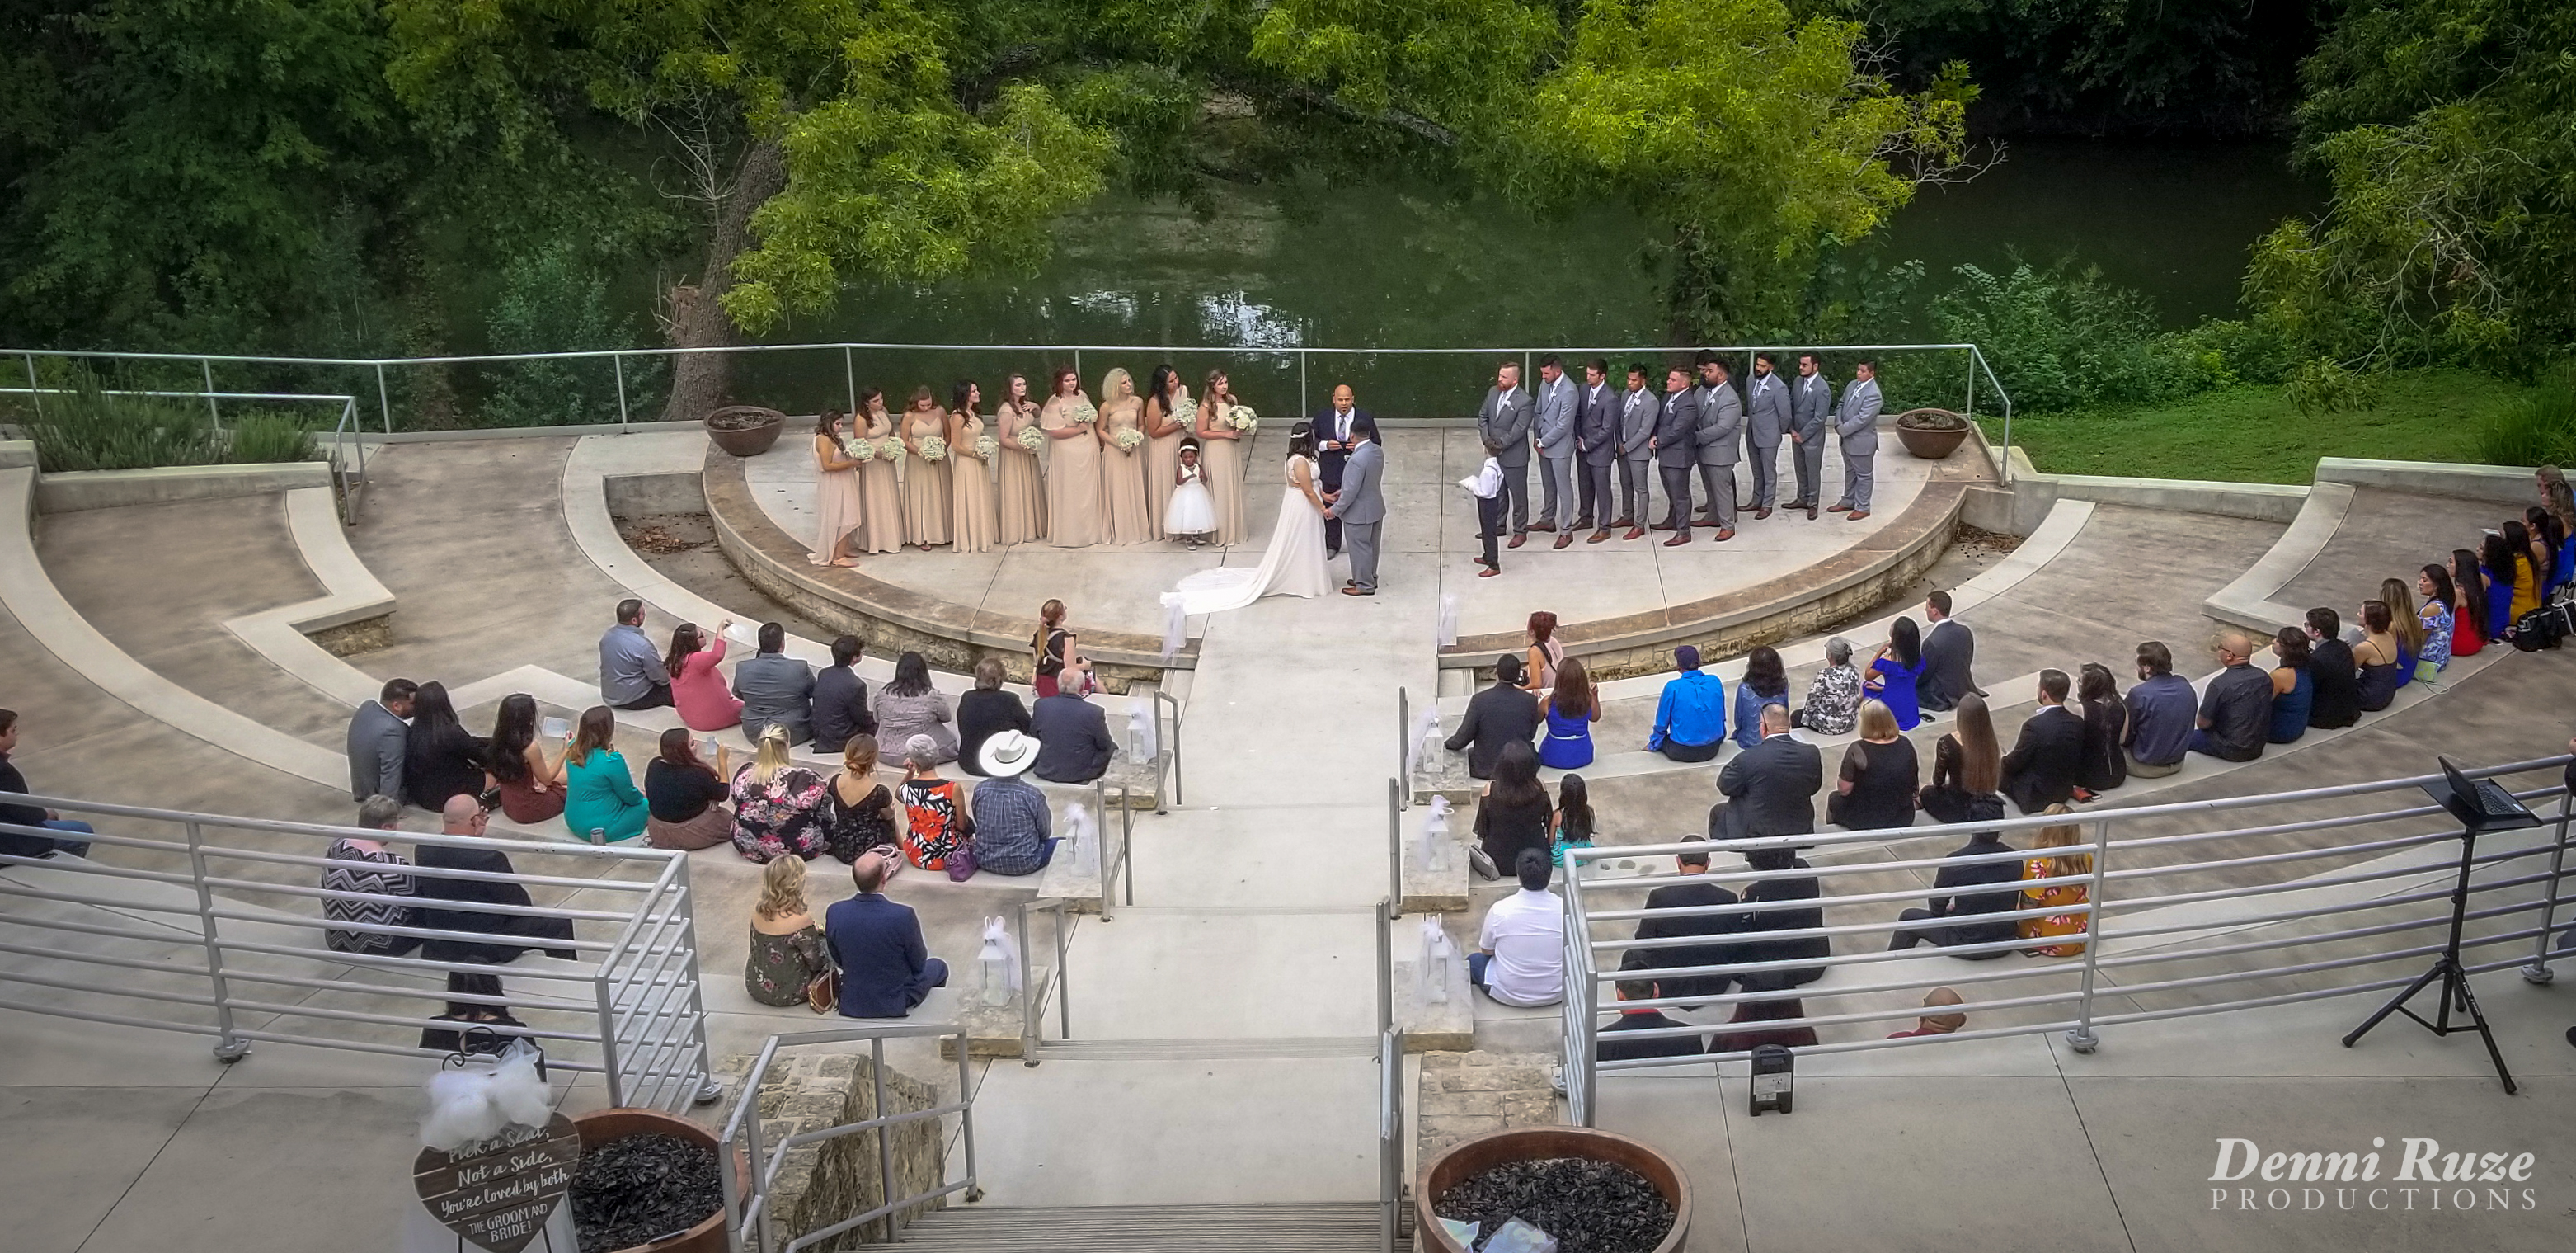 The wedding ceremony, with the bridal party on stage and the bride and groom listening to the minister. Guests are seated, with green foliage and river in the background.